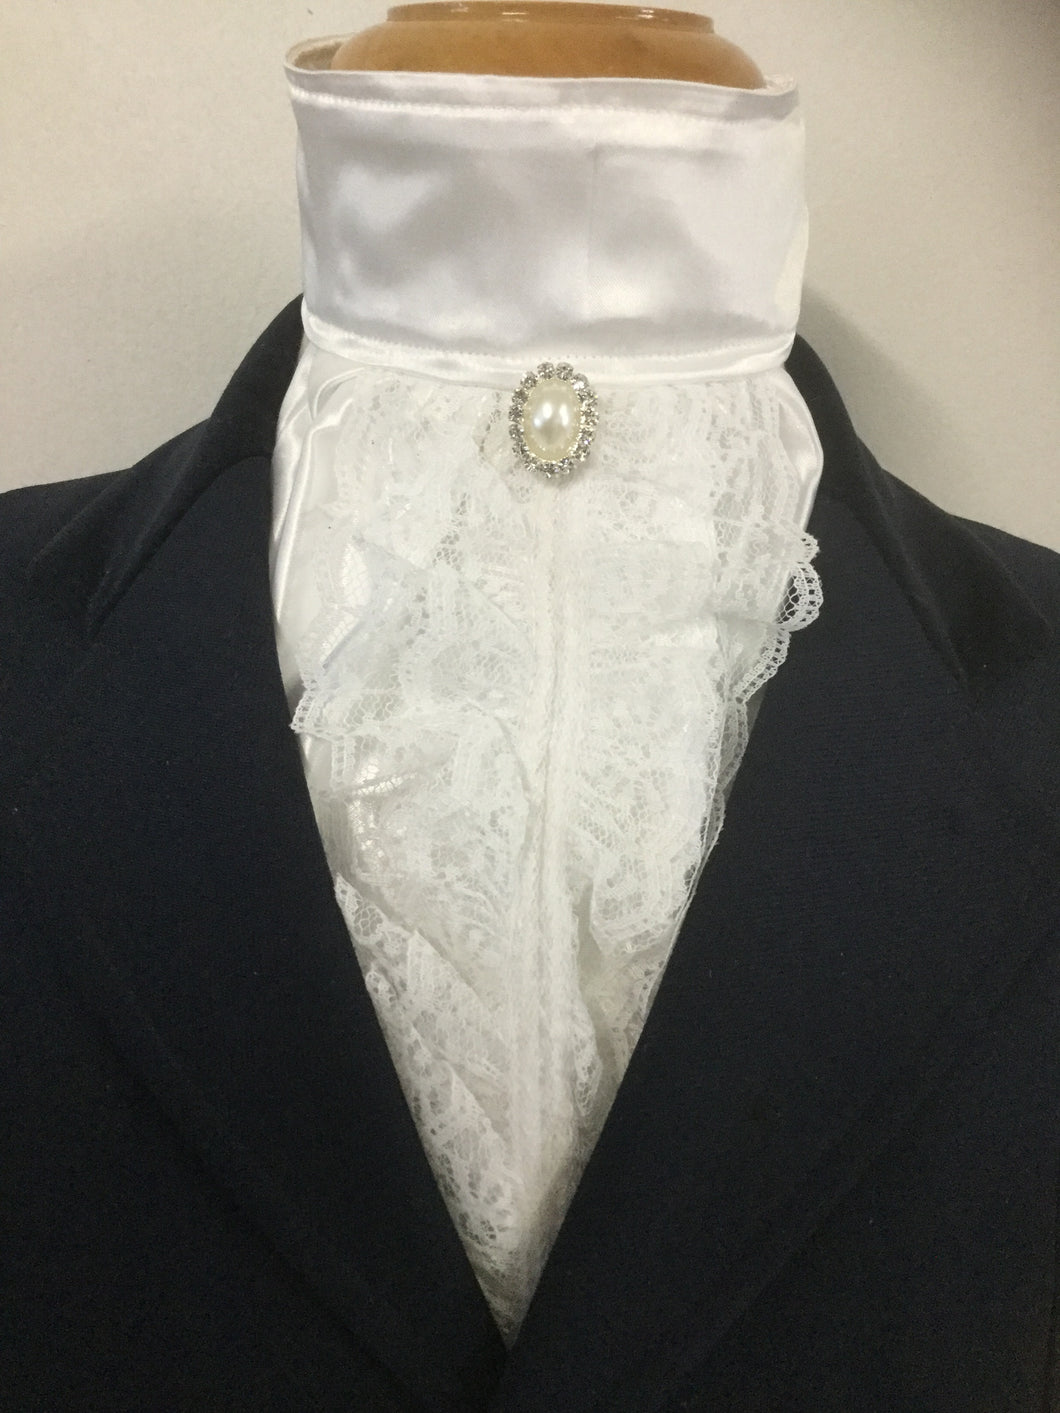 HHD White Satin Euro Stock Tie Vintage Lace 'Nelly'